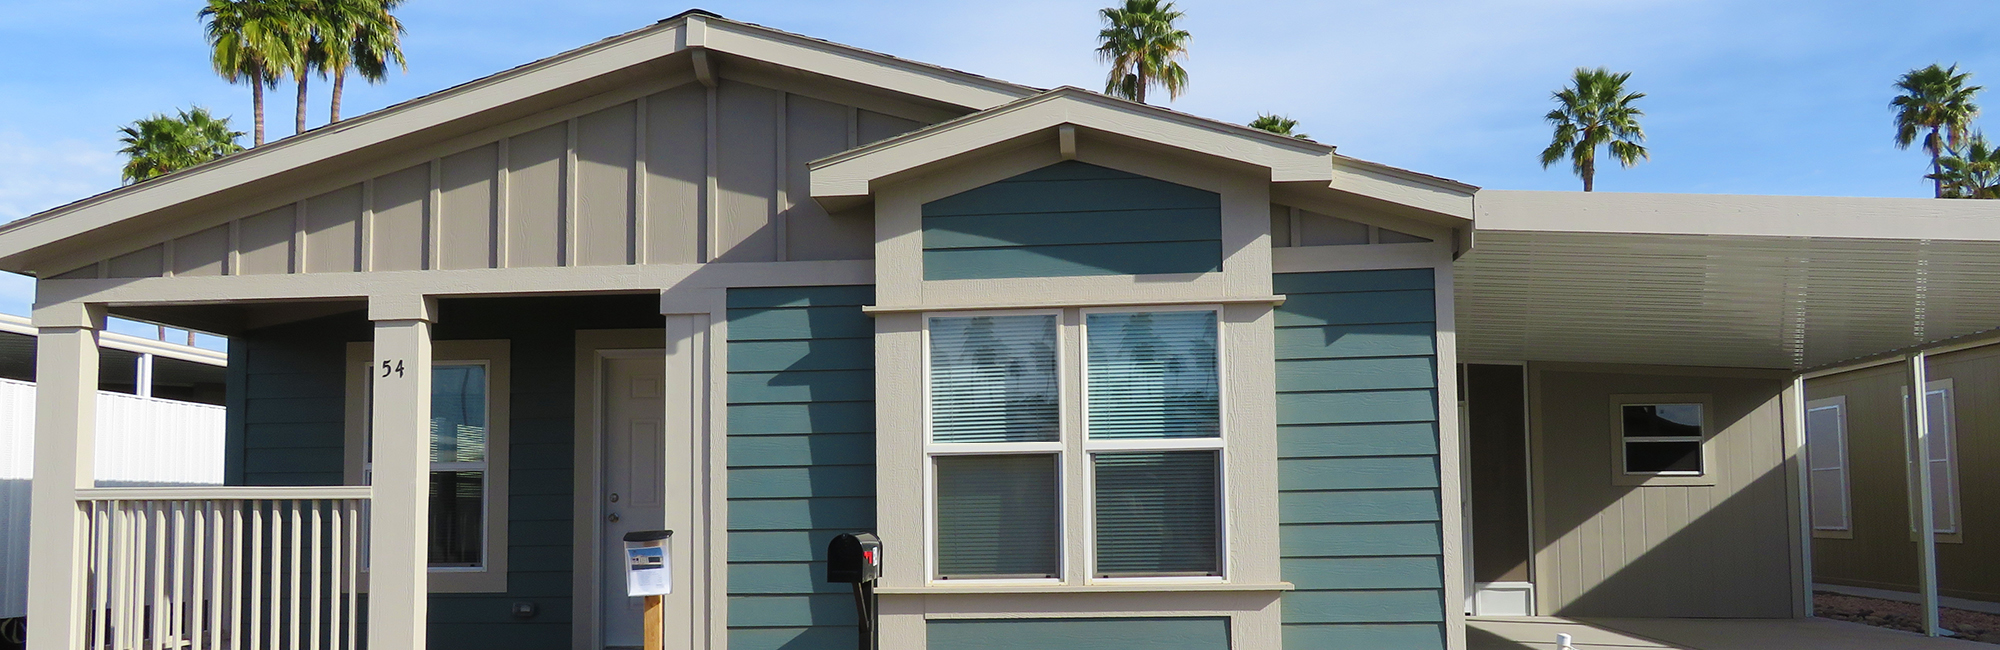 Mesa Arizona Manufactured Homes